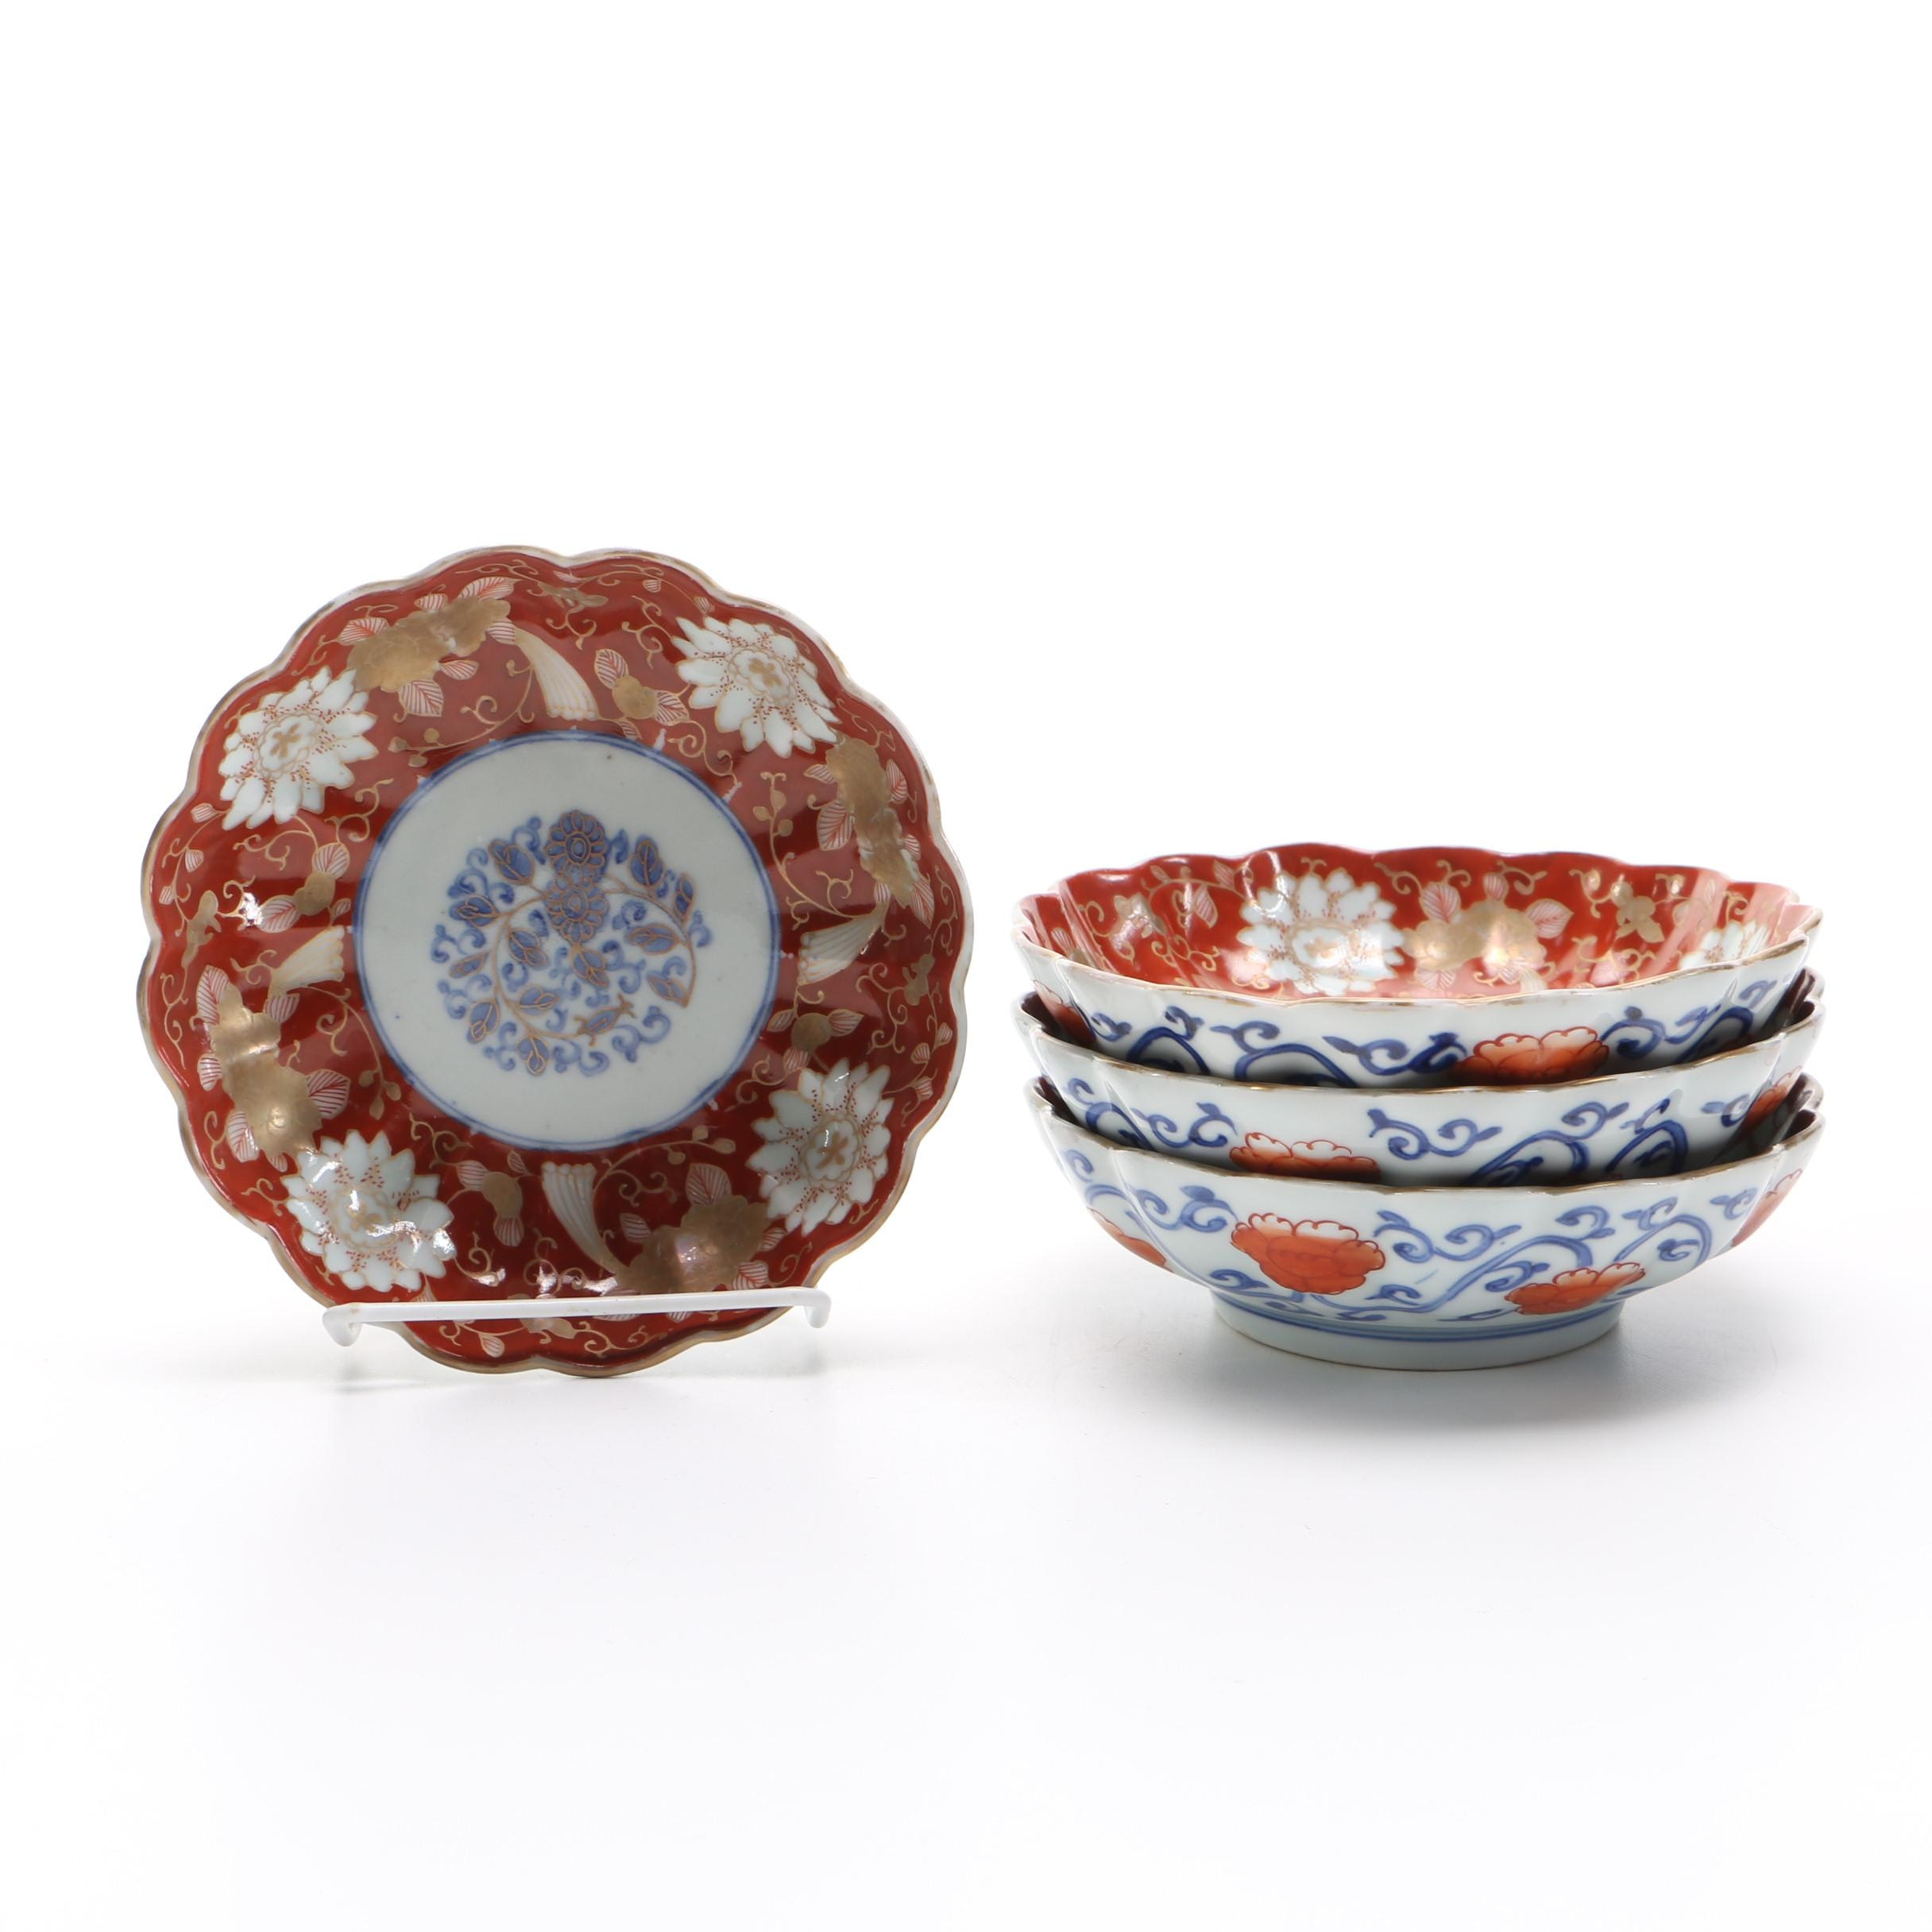 Set of Hand-Painted Chinese Bowls